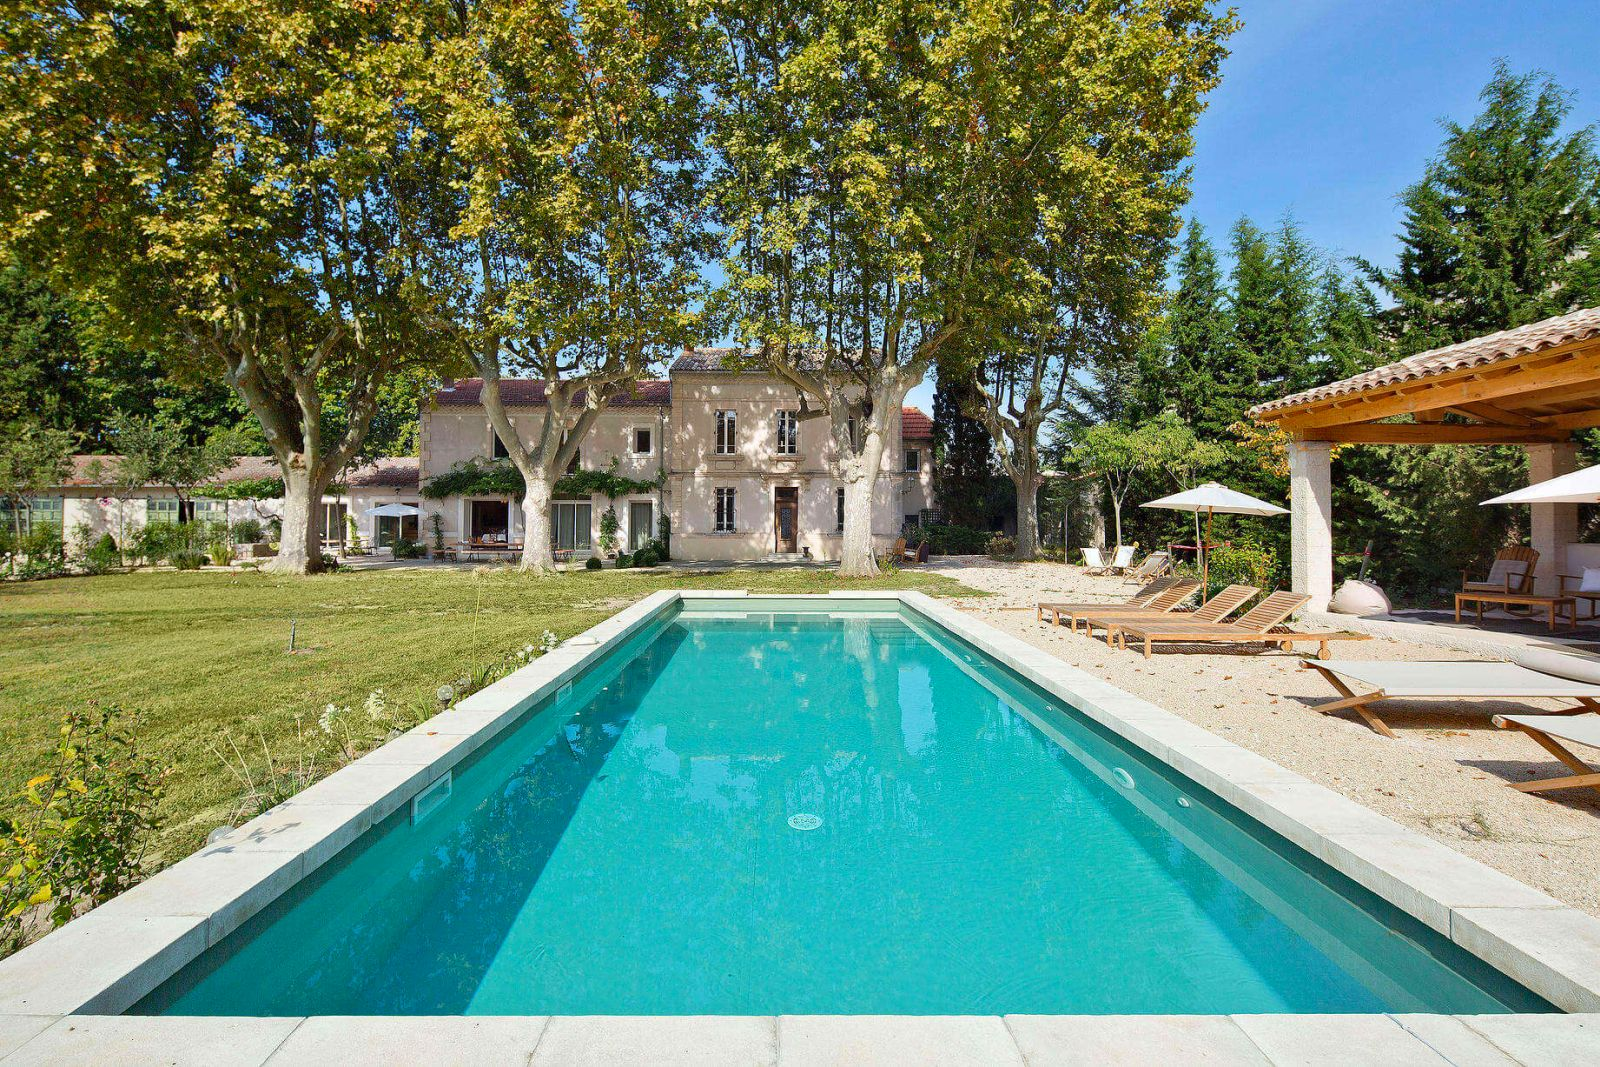 Provence Luxury Villa Rentals Avignon With Private Pool And Staff ...